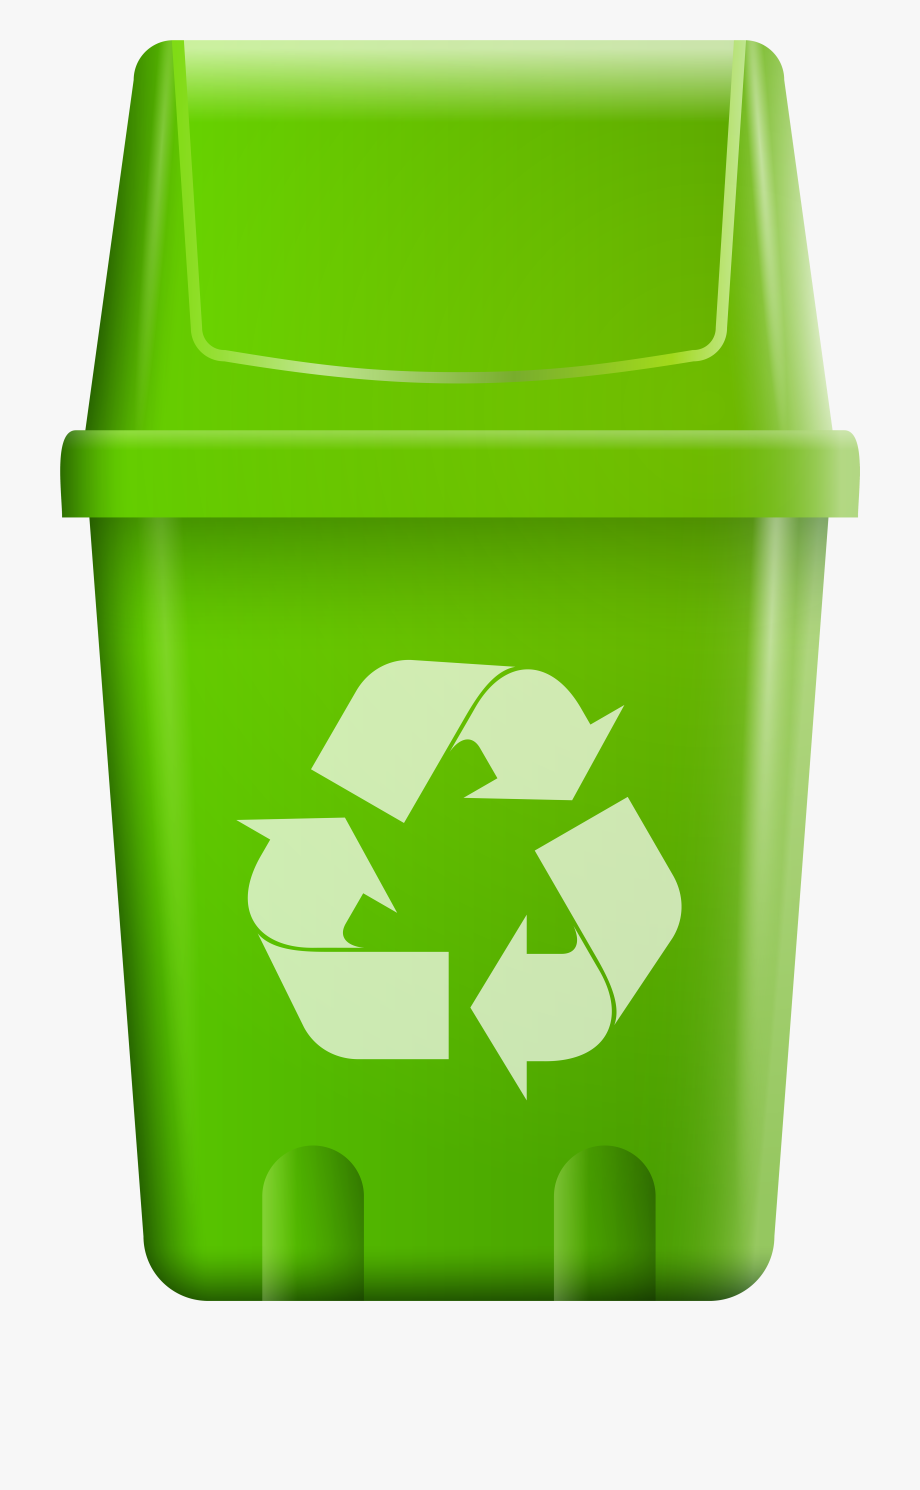 royalty free download Trash with recycle symbol. Trashcan clipart bin.